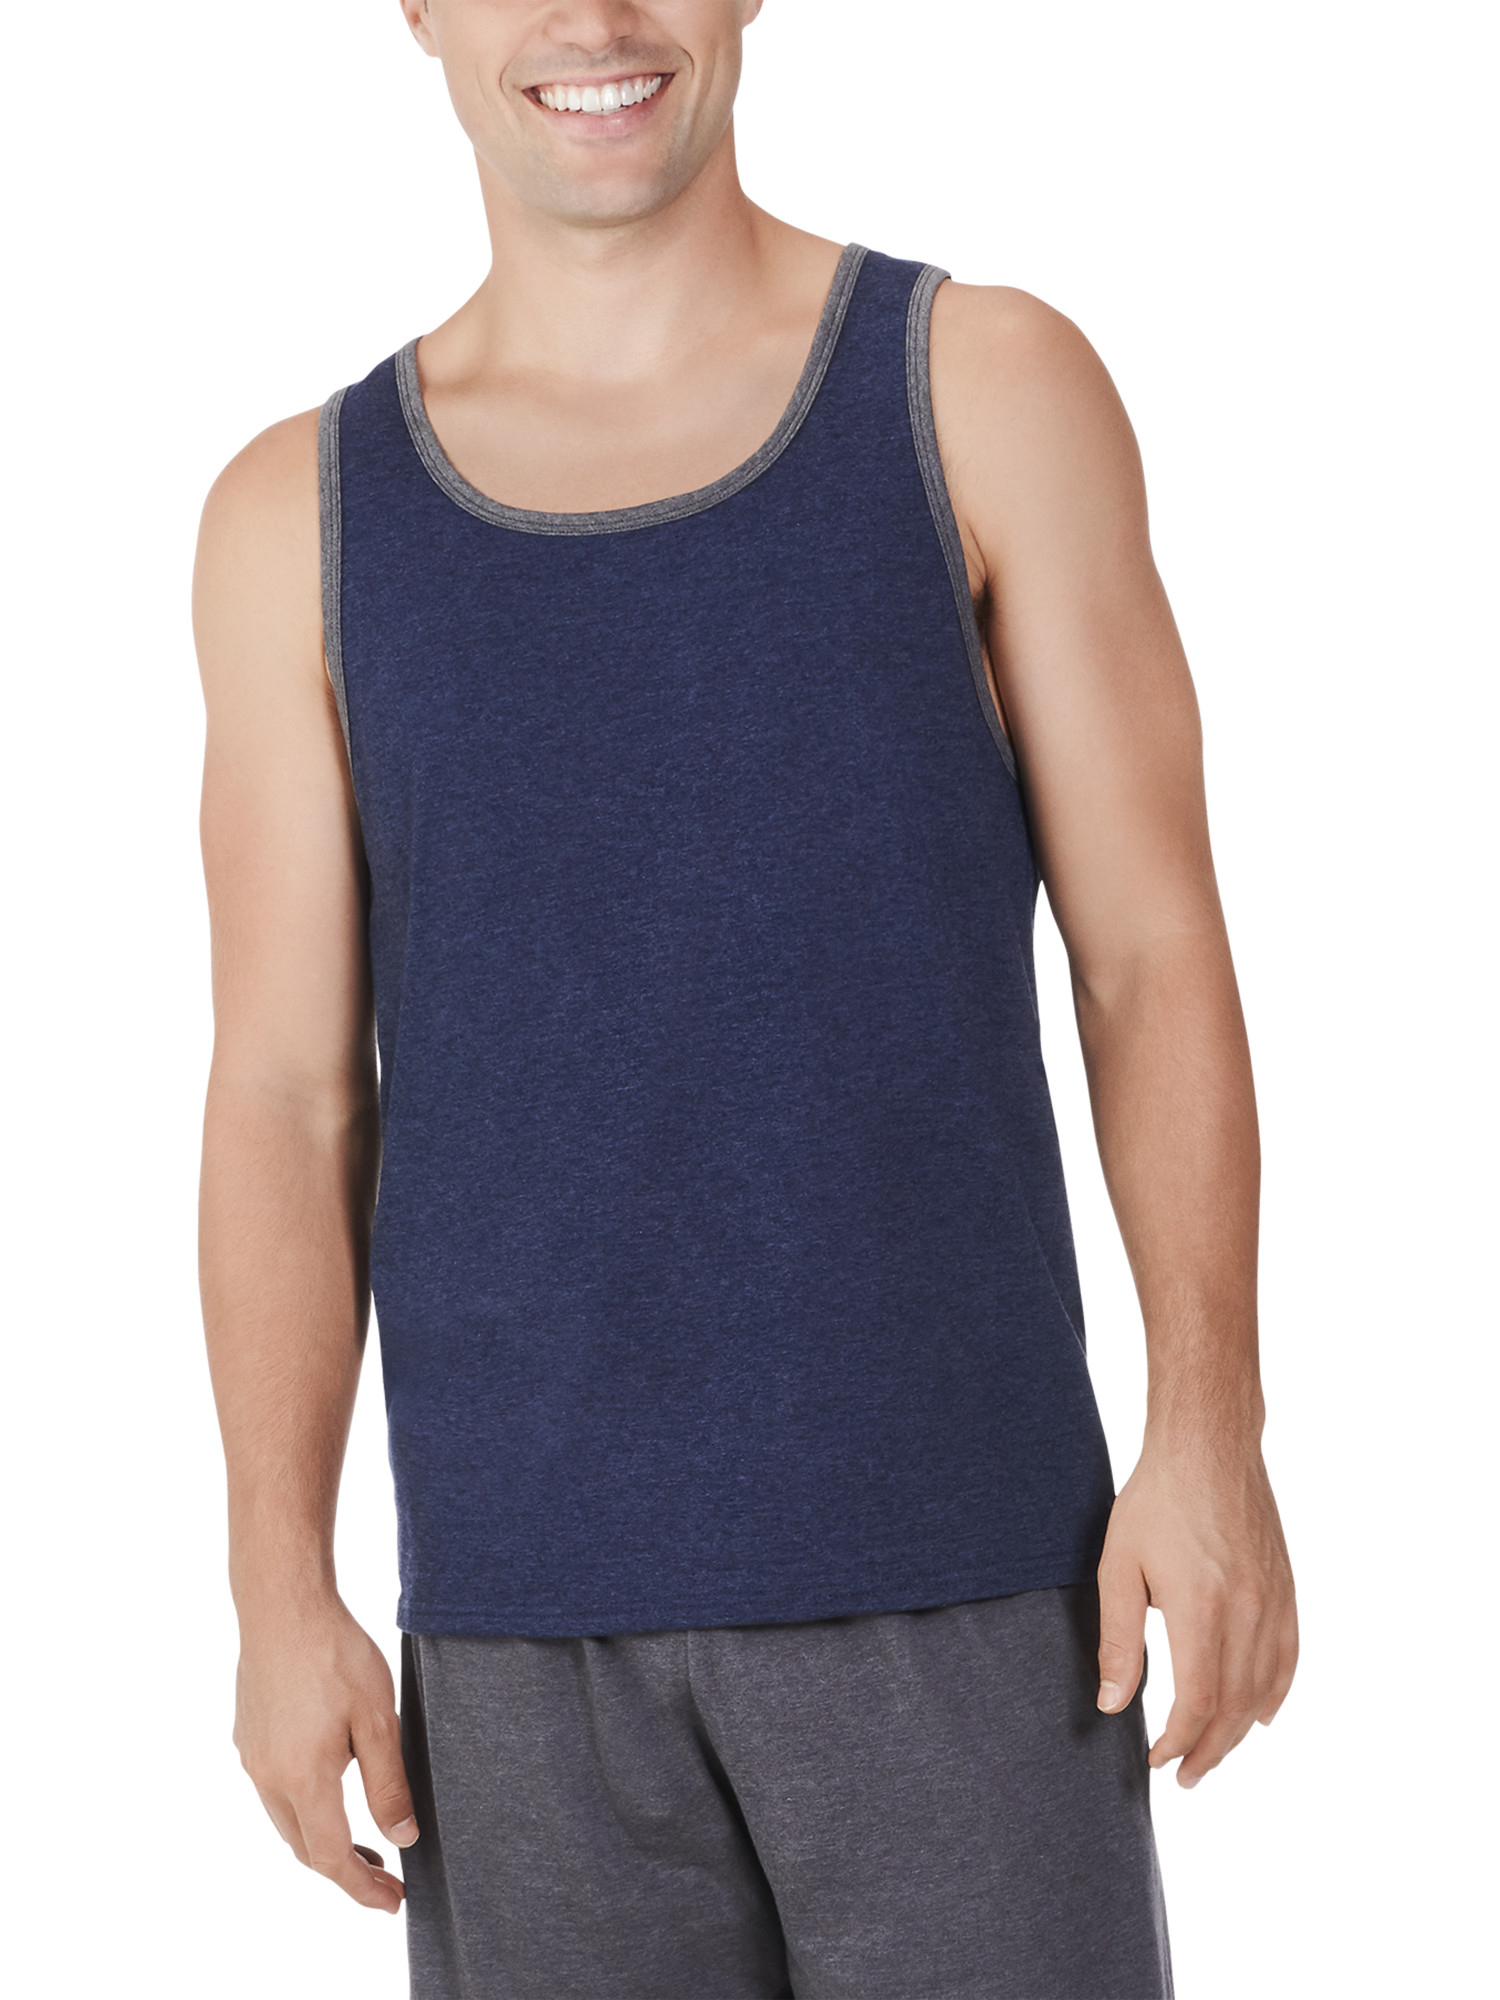 Men's Dual Defense UPF Tank, Available up to sizes 4XL